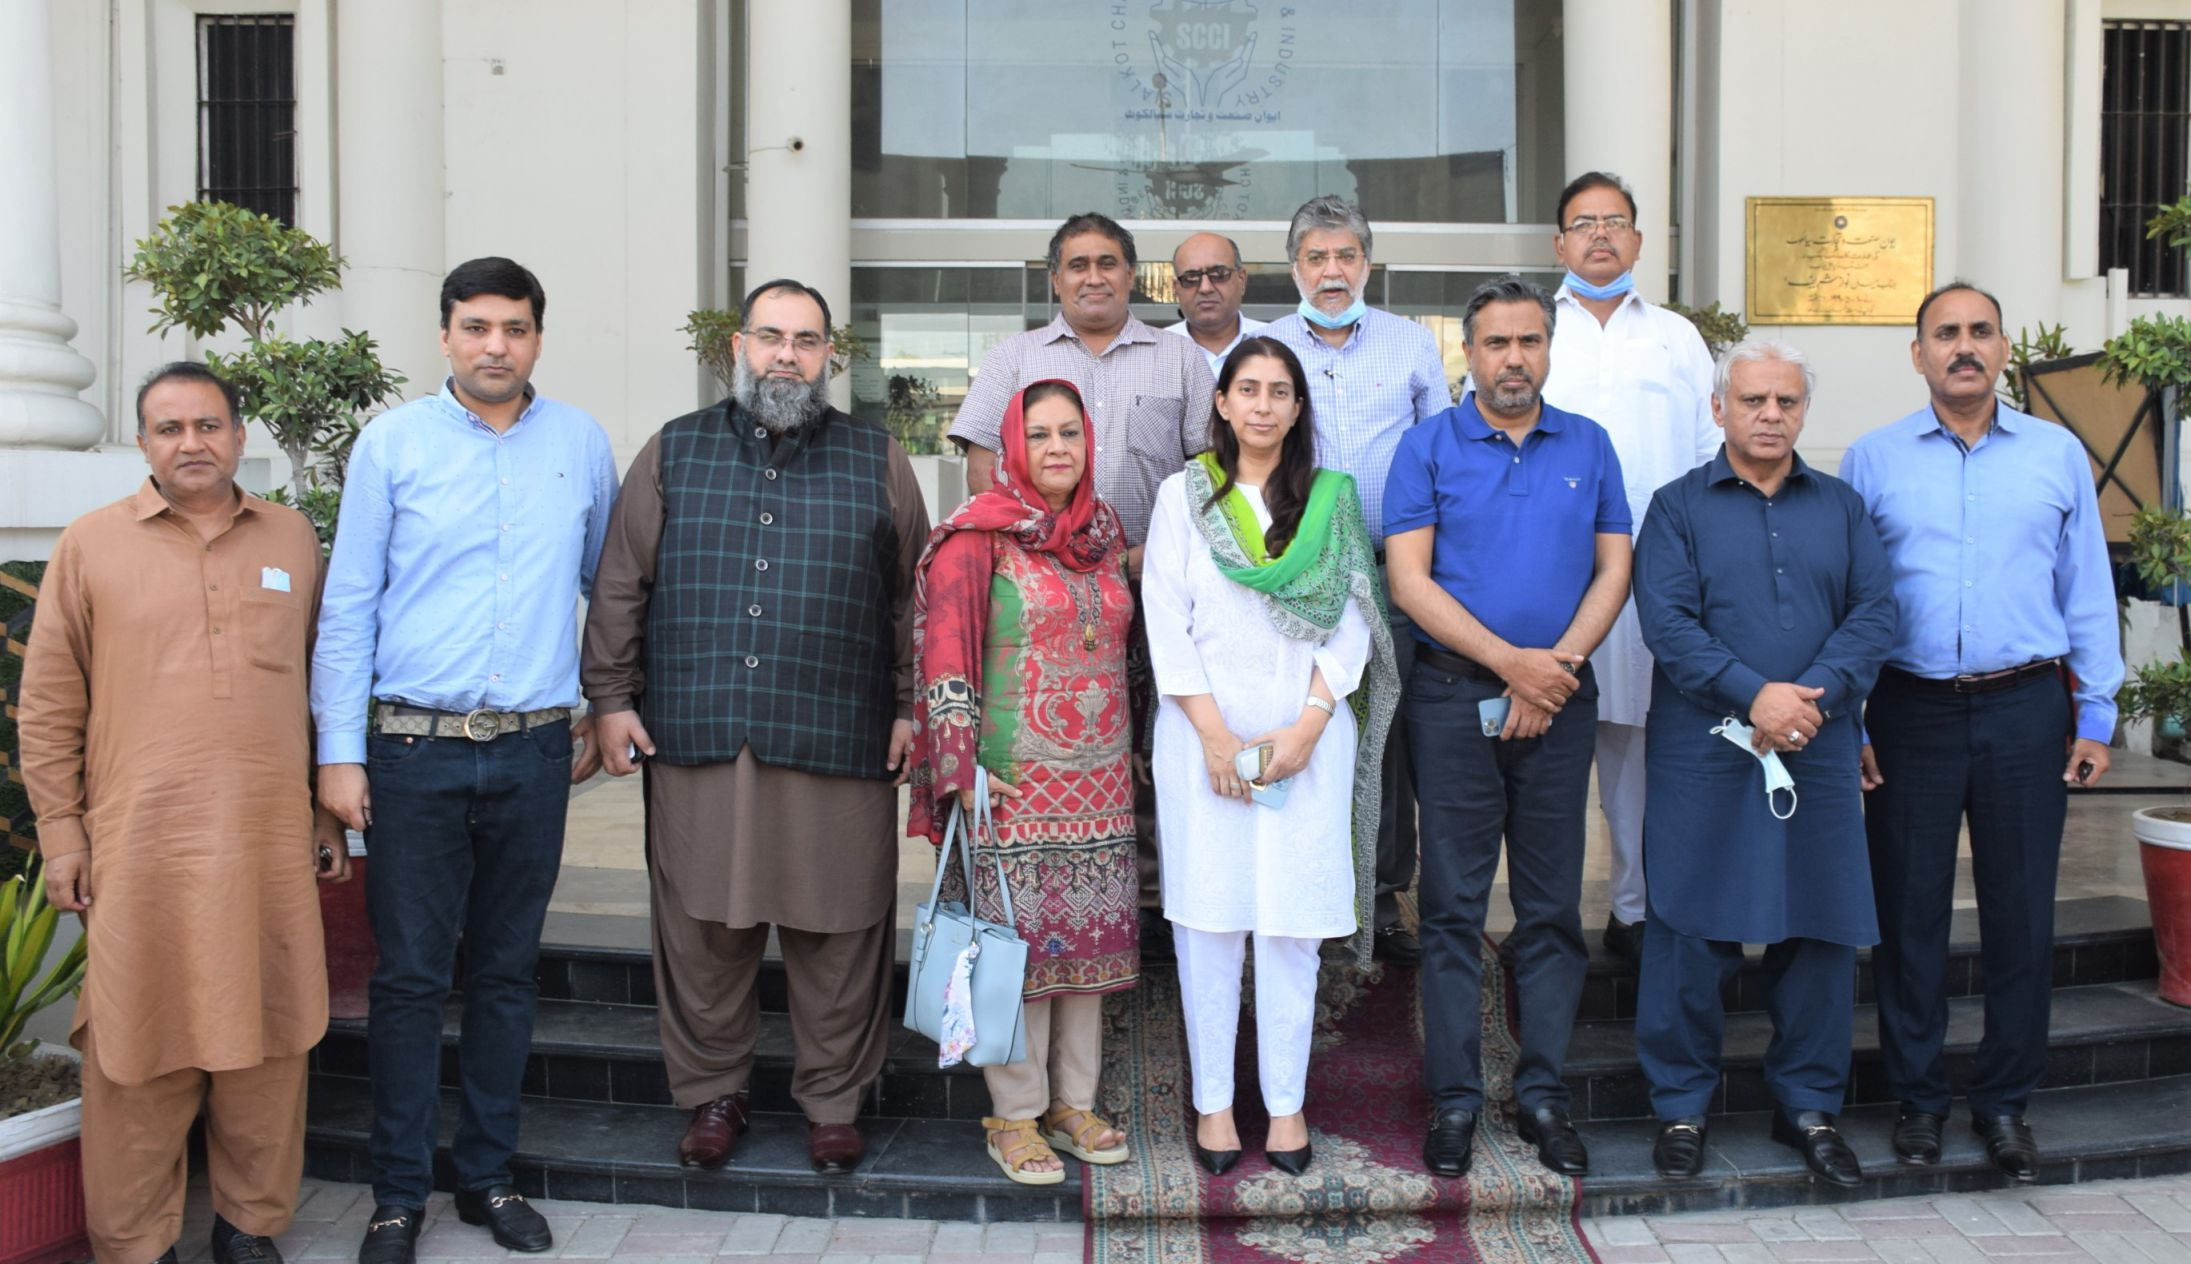 On September 15, 2021, Ms. Ambreen Ahmed Tarar, Collector, Collectorate of Customs Sialkot visited Sialkot Chamber of Commerce & Industry.  Mr. Qaisar Iqbal Baryar, President, Mr. Khuram Aslam, Senior Vice President, Mr. Ansar Aziz Puri, Vice President SCCI, Former Office bearers SCCI and  Members of Executive Committee SCCI welcomed Ms. Ambreen Tarar. Mr. Qaisar Iqbal Baryar, President Sialkot Chamber explained the role of the Sialkot Business Community in strengthening the Exports of the Country. The President mentioned some matters related to Temporary Export Facilitation Scheme, Implementation of single audit procedures and Integration of Sialkot Custom Collectorate with other Customs Collectorates. Ms. Ambreen Ahmed Tarar, Collector, Collectorate of Customs Sialkot thanked President Sialkot Chamber and all the participants of the meeting and assured every possible effort from Sialkot Customs Collectorate  to resolve the issues creating hurdles in uplift the exports of the country.